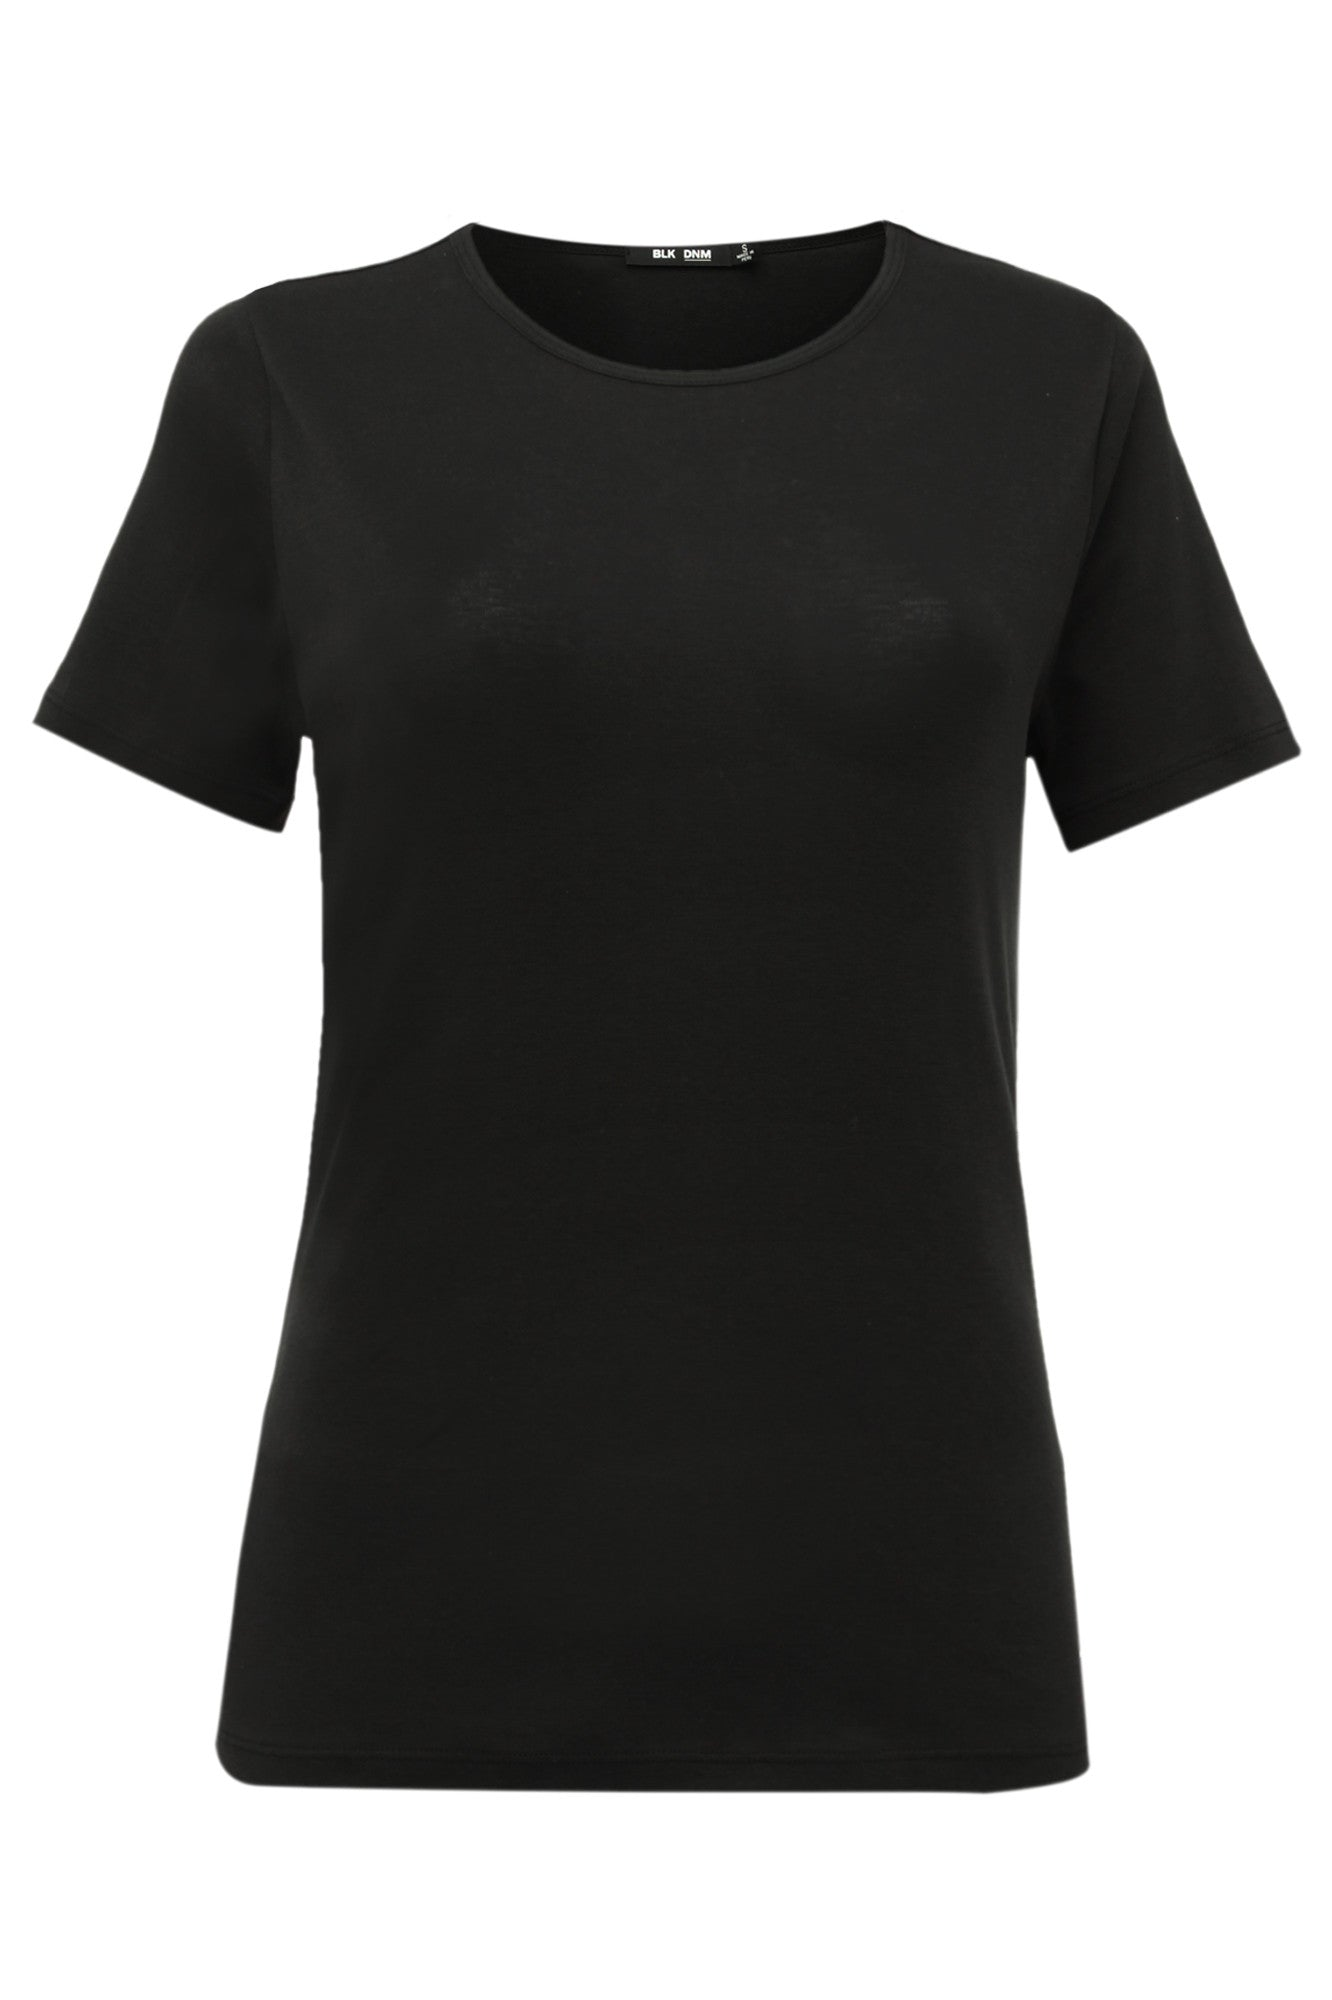 Womens T-Shirt 41 Black